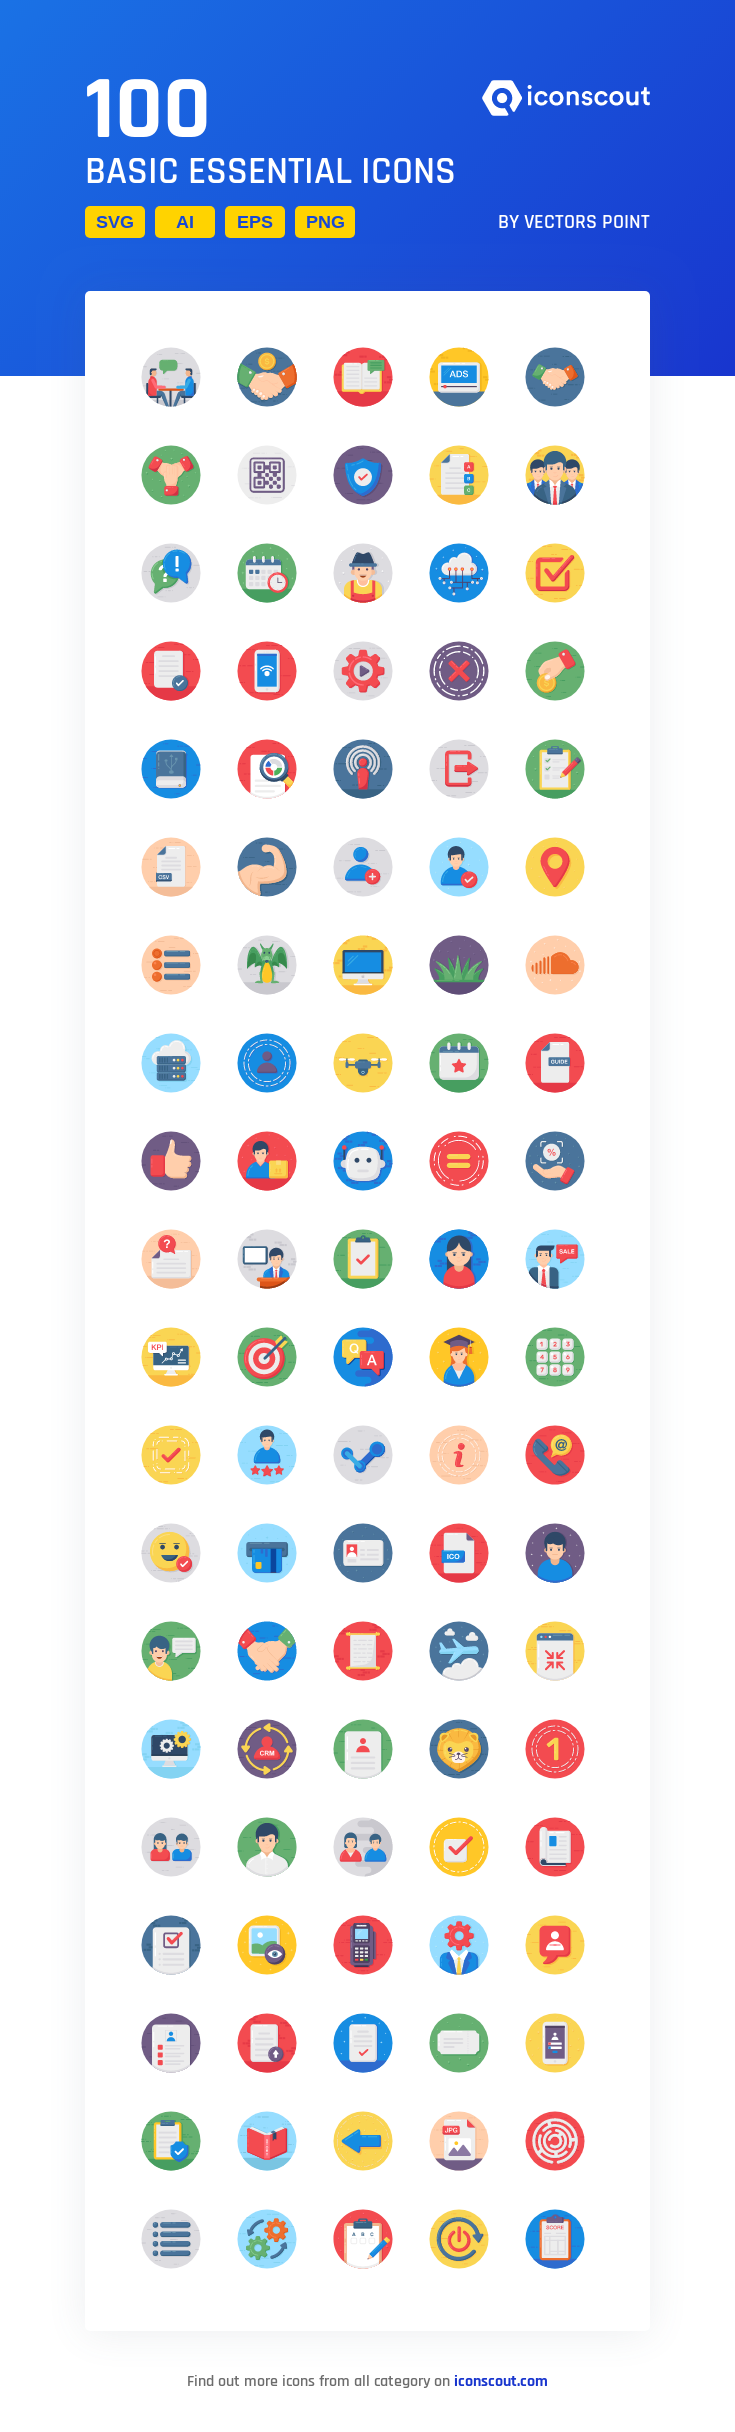 Download Basic Essential Icon Pack - 100 Rounded Icons | Icon pack ...